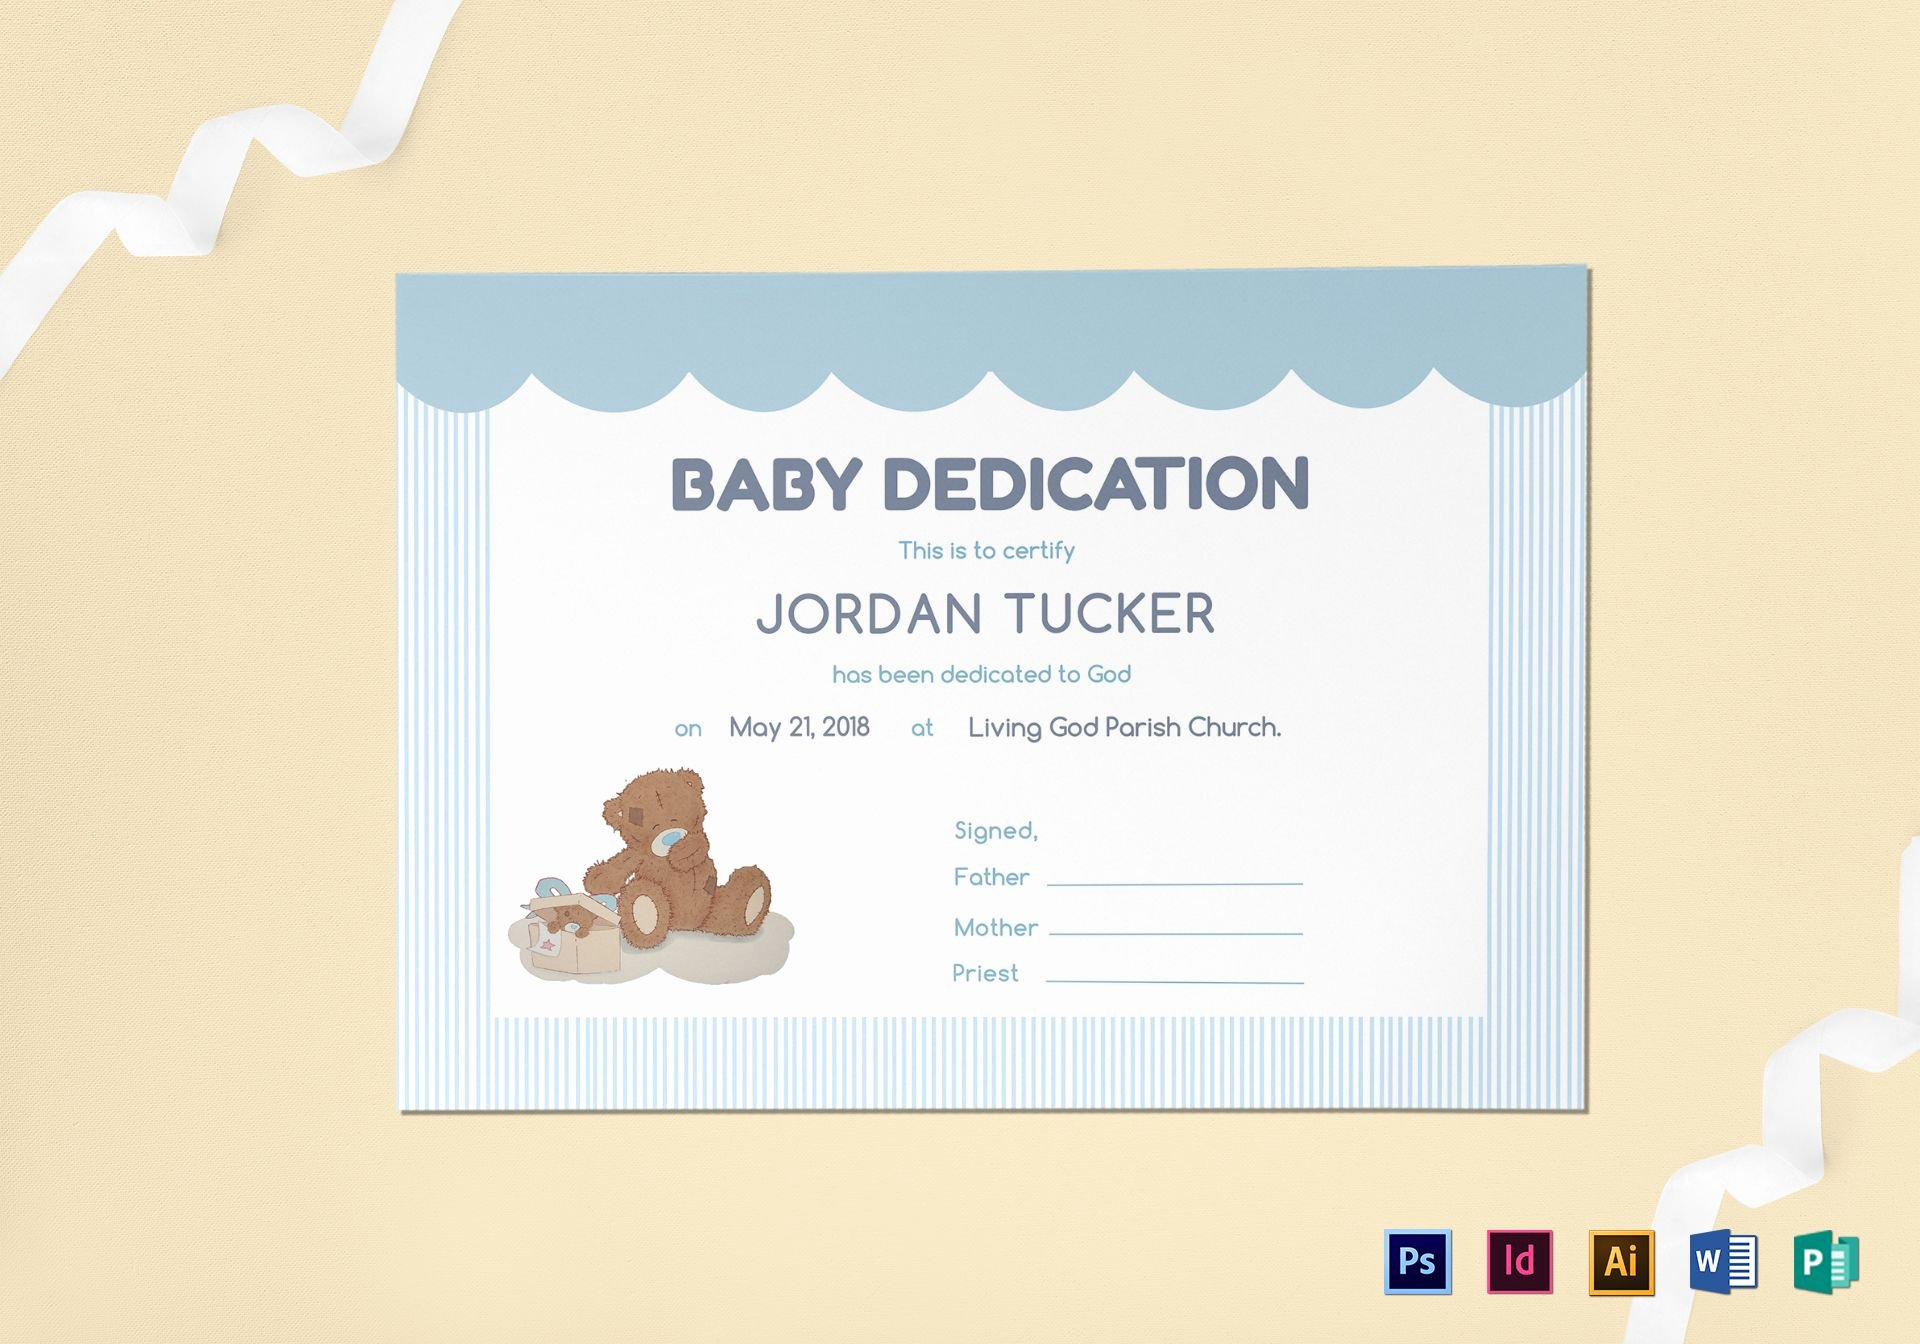 Baby Dedication Certificate Template Fresh Baby Dedication Certificate Design Template In Psd Word Publisher Illustrator Indesign